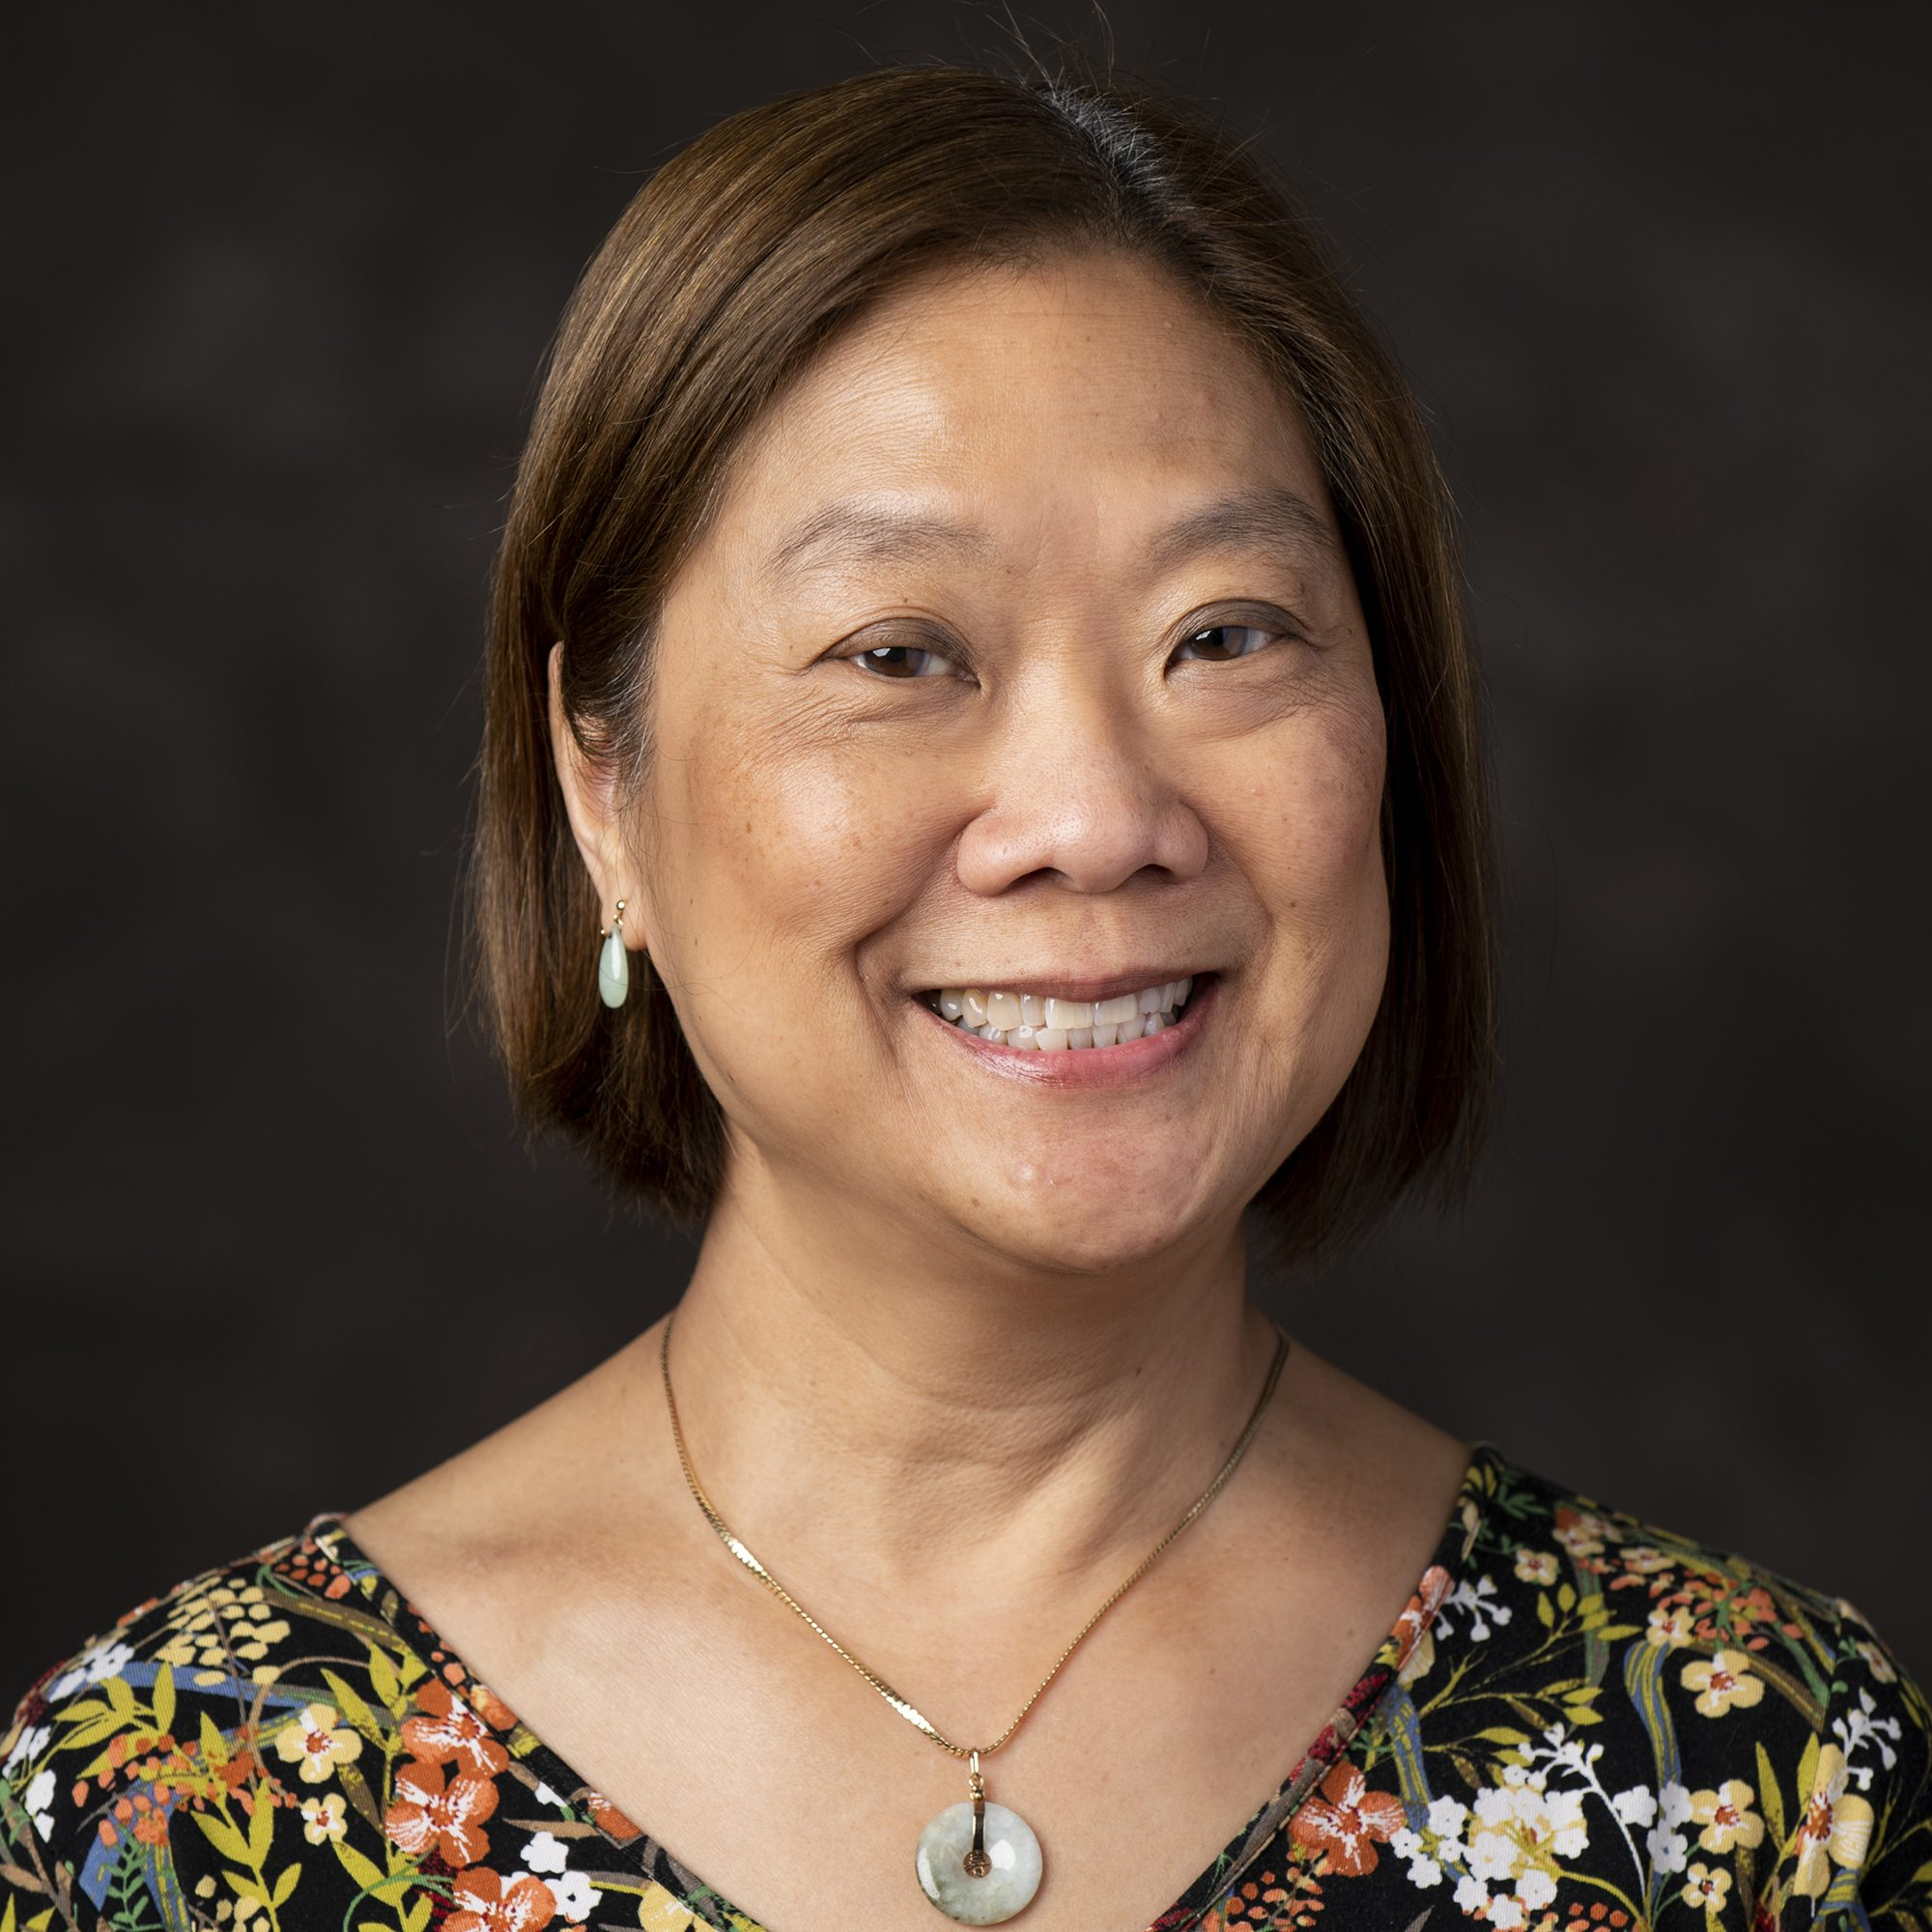 01/15/2020 - N. Grafton, Mass. - Dr. Florina S Tseng, Associate Professor and Associate Chair of Infectious Disease and Global Health at the Cummings School of Veterinary Medicine at Tufts University, poses for a portrait on January 15, 2019. (Alonso Nichols/Tufts University)